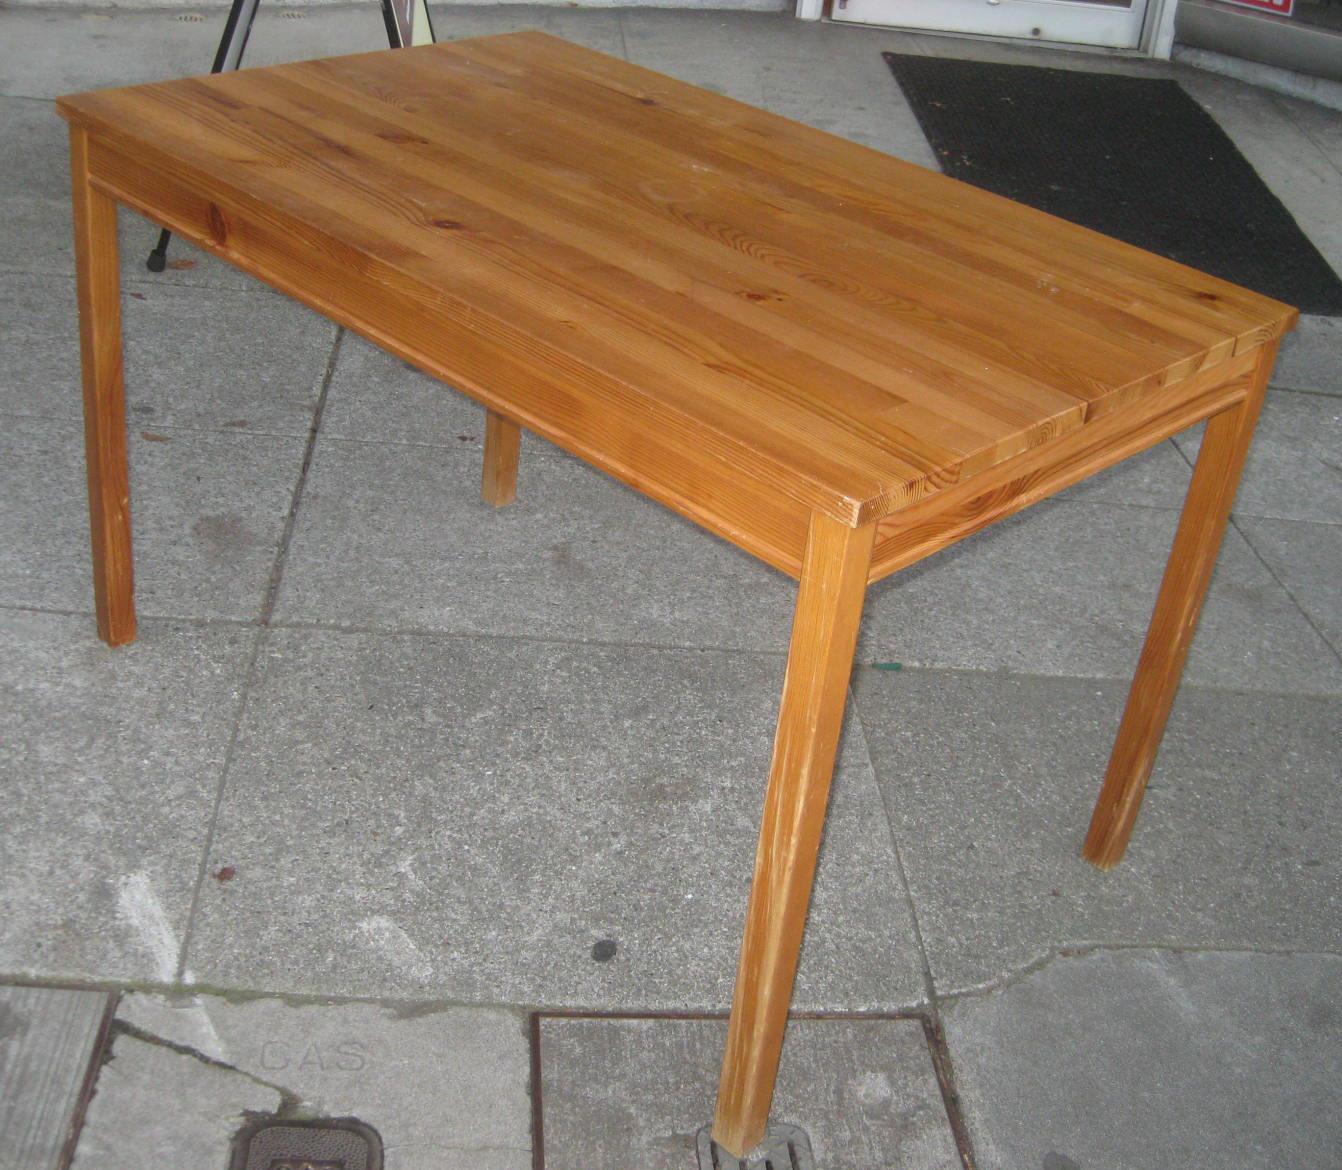 Uhuru furniture collectibles sold pine ikea table 35 for Pine desk ikea